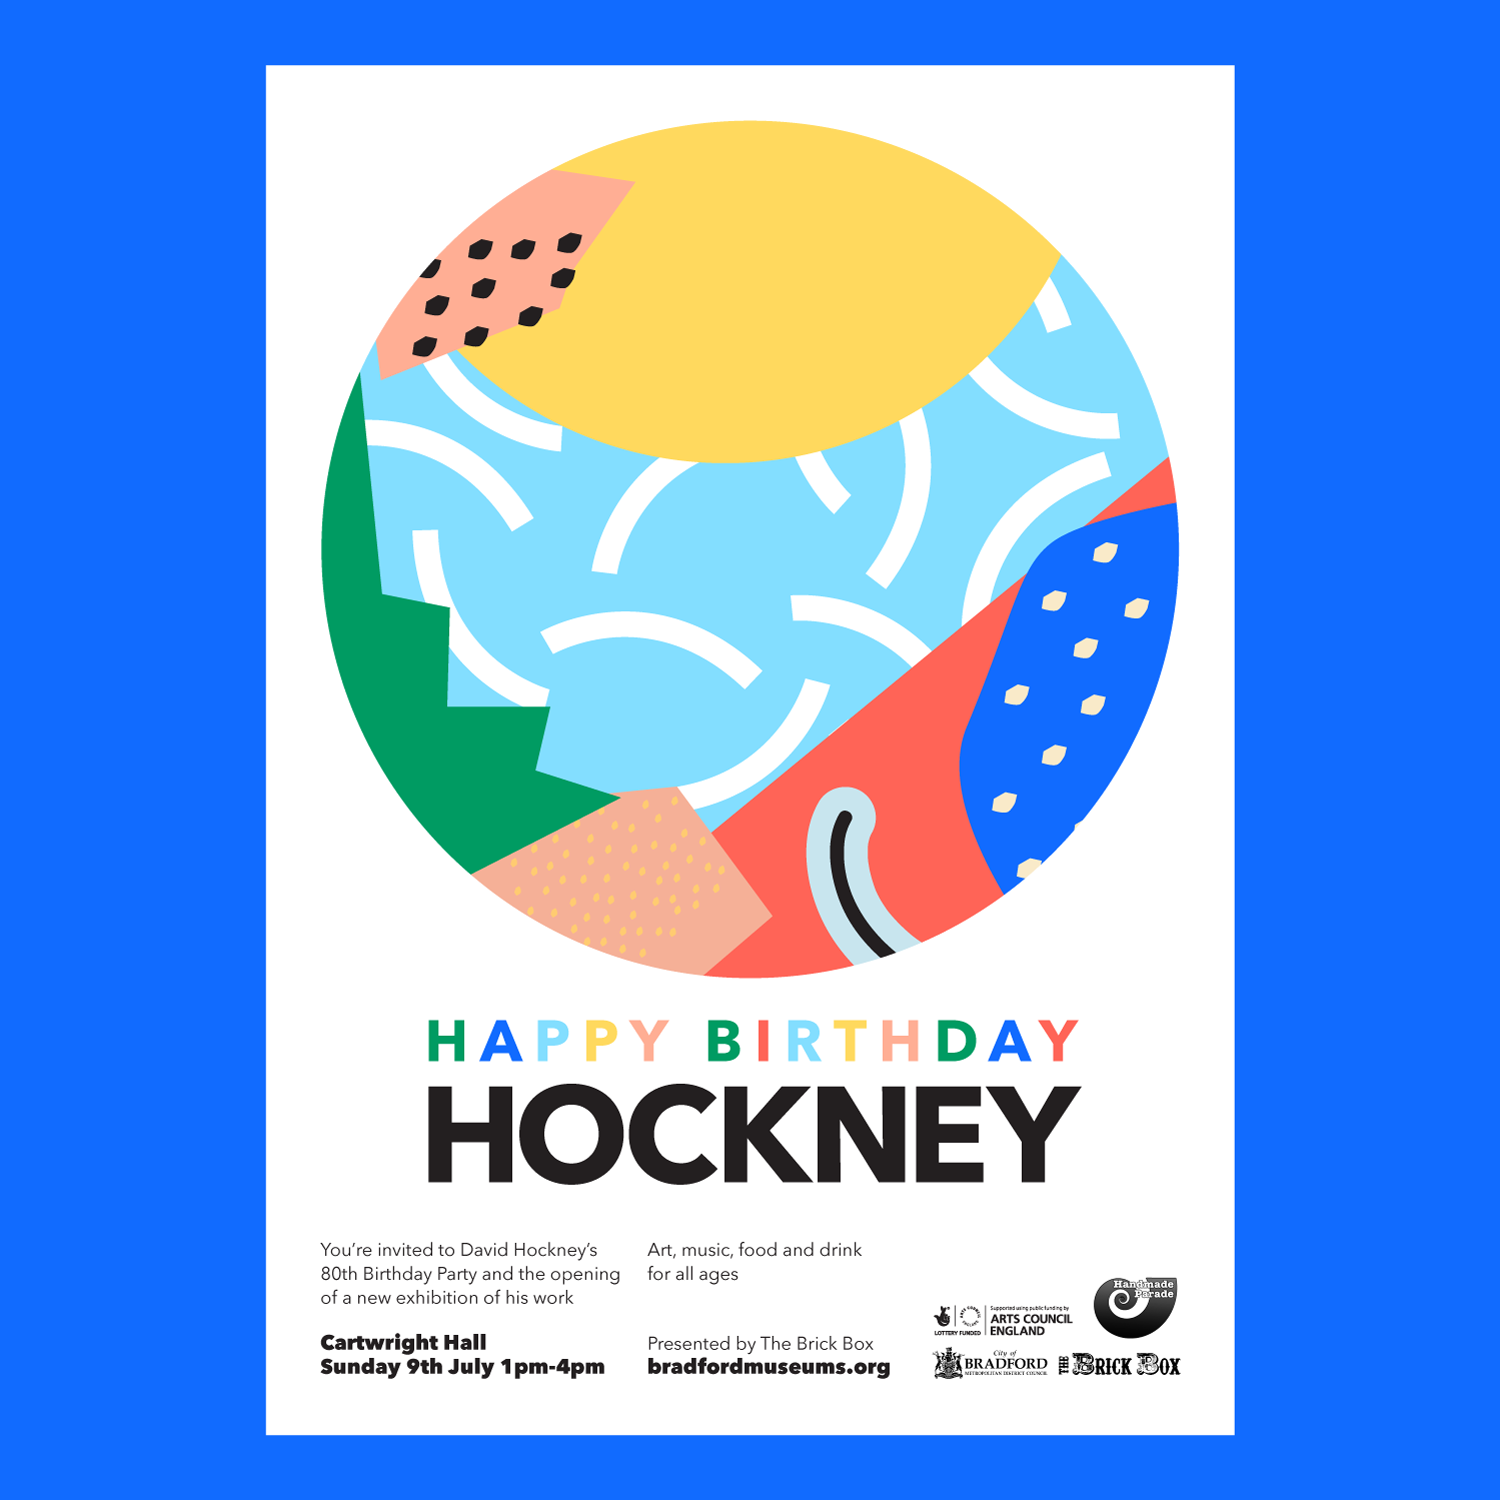 Hockney's 80th